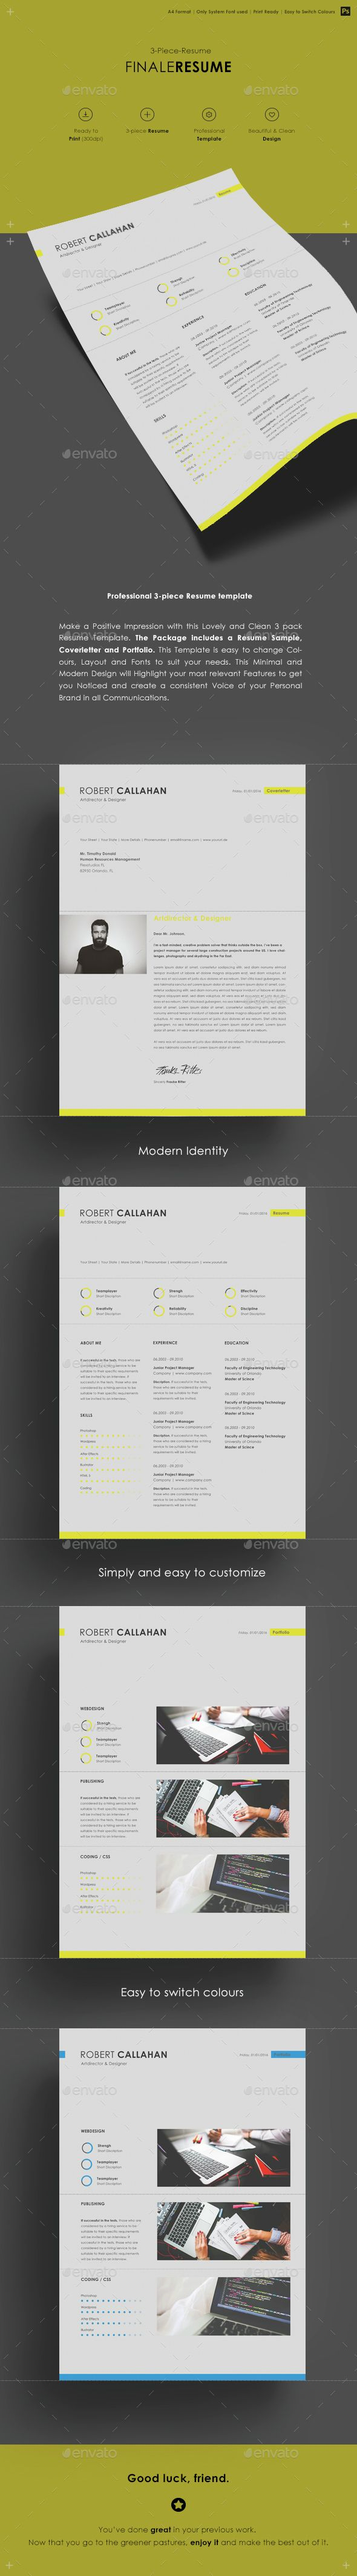 graphic design resume template%0A Resume